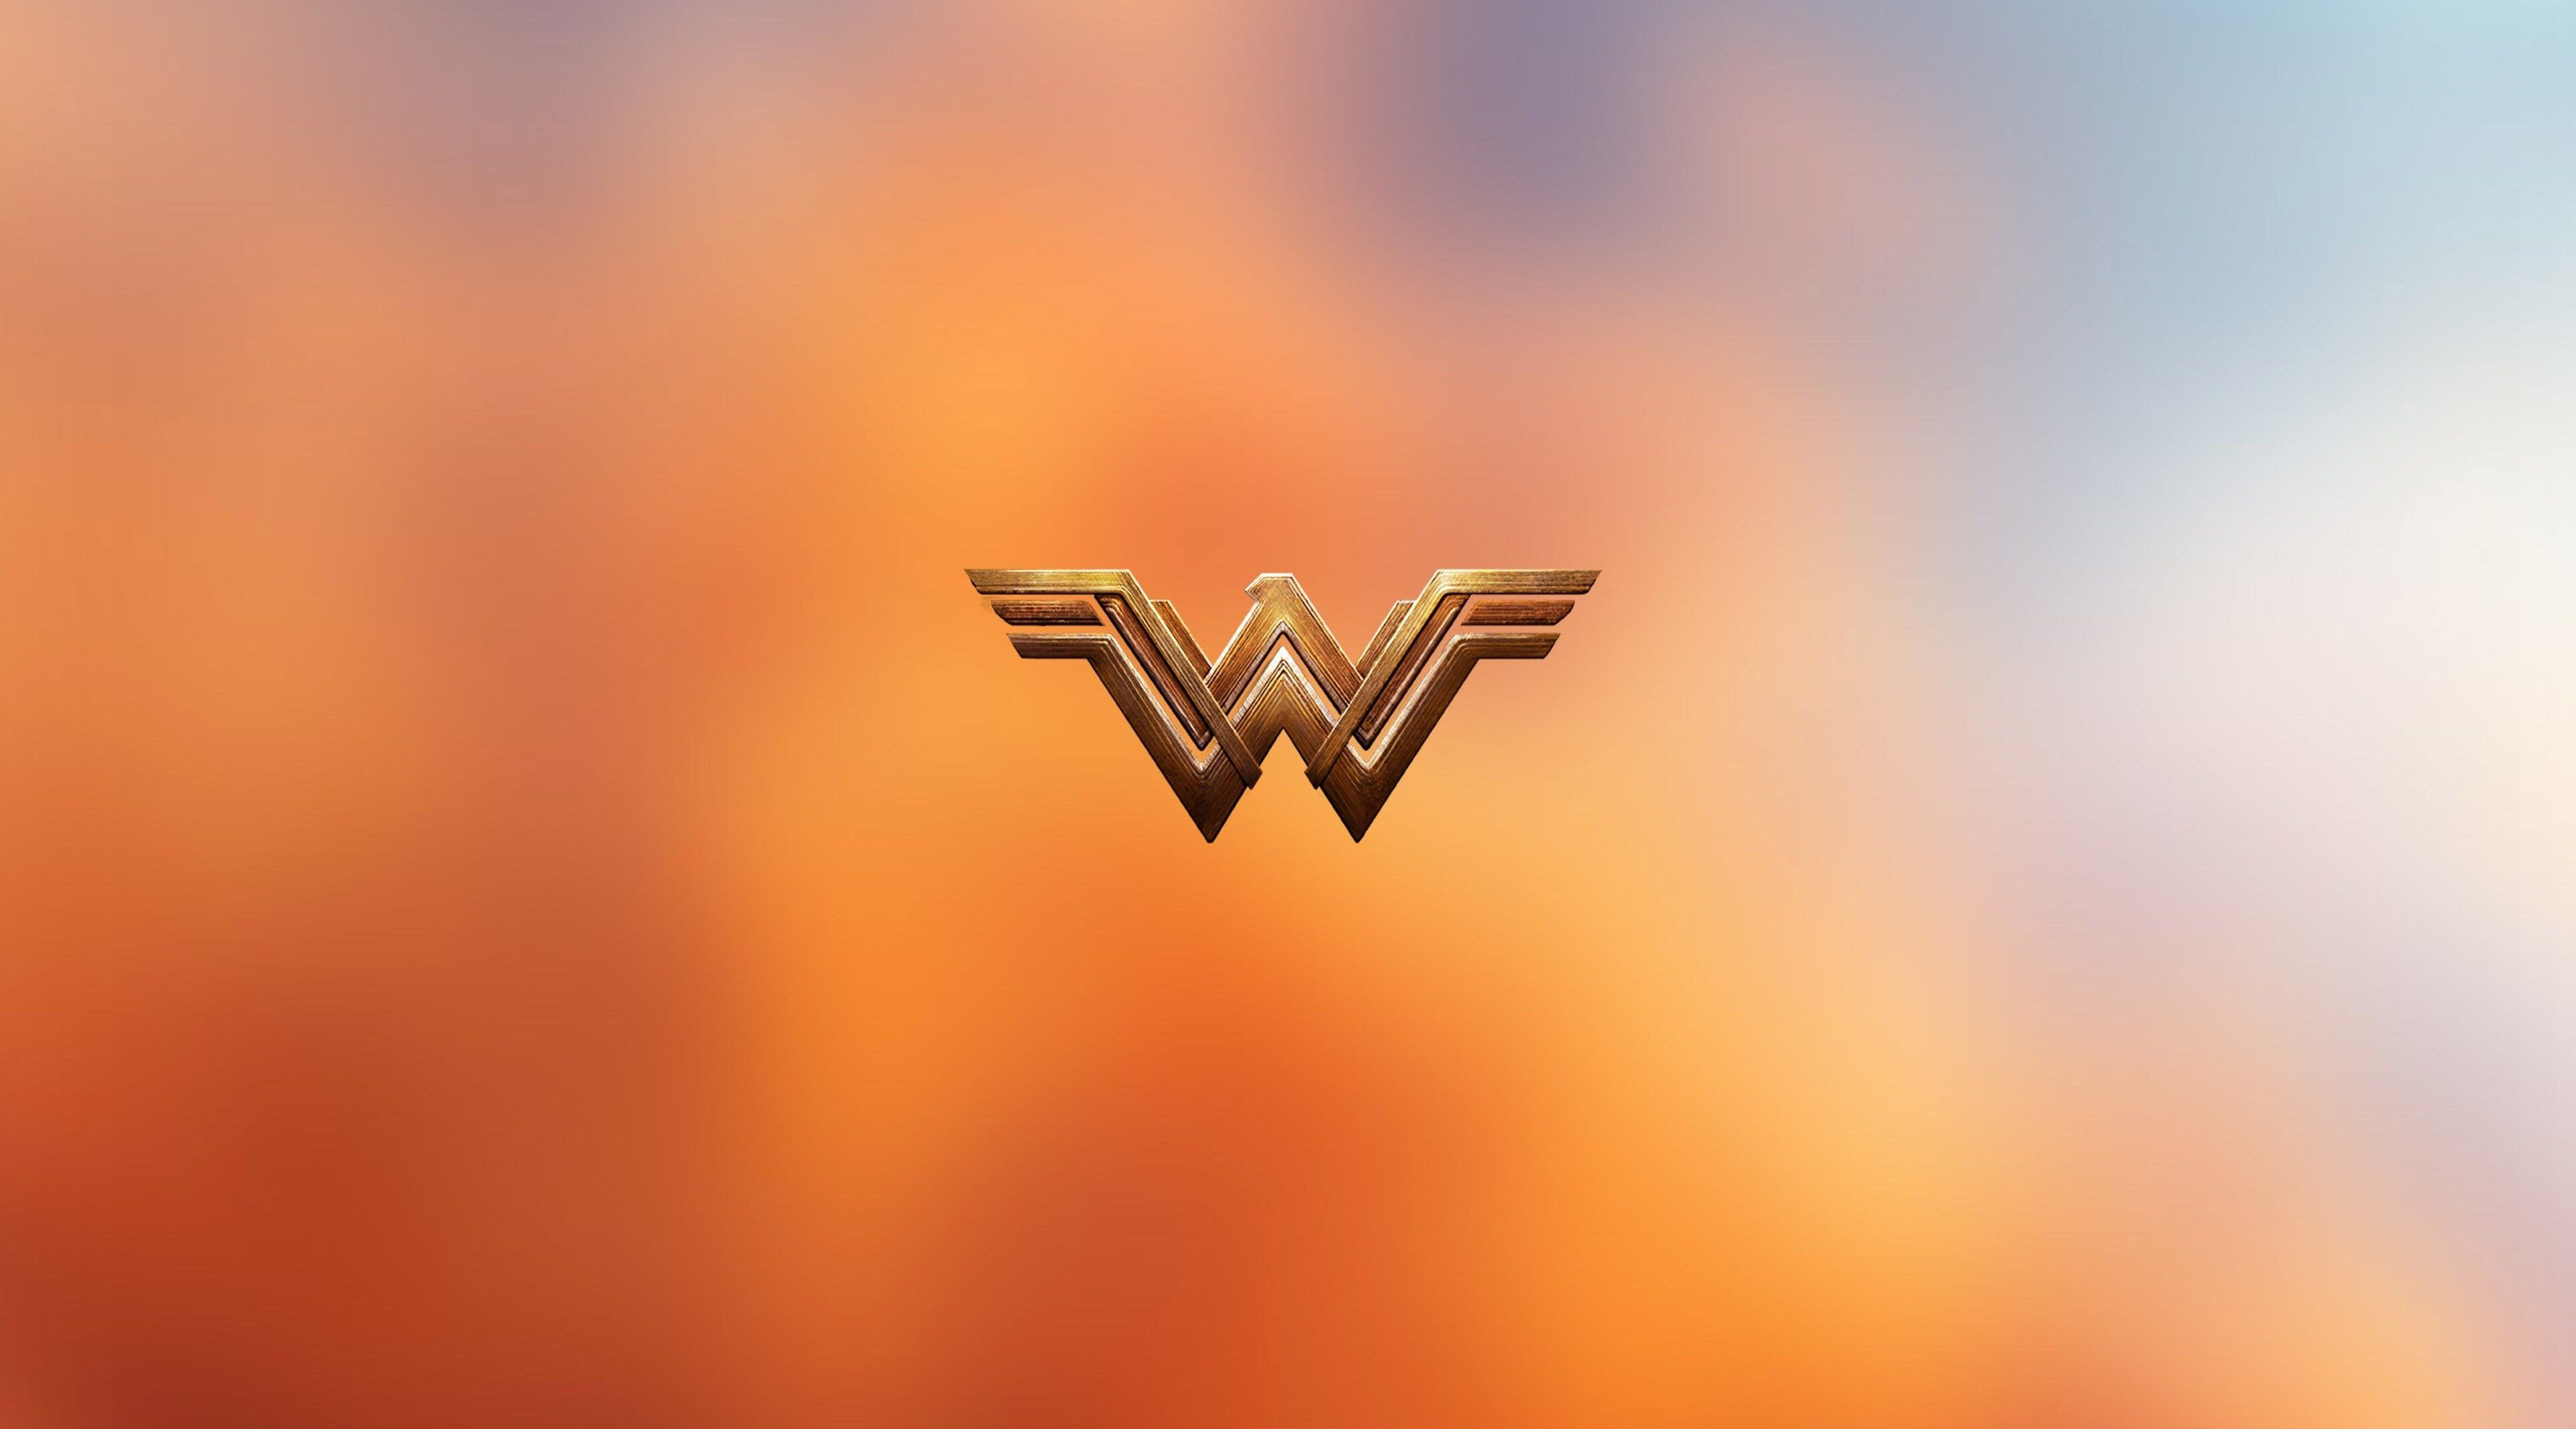 3840x2130 Wonder Woman 4k Wallpaper Hd Pc Download Wonder Woman Logo Wallpaper Pc Hero Wallpaper